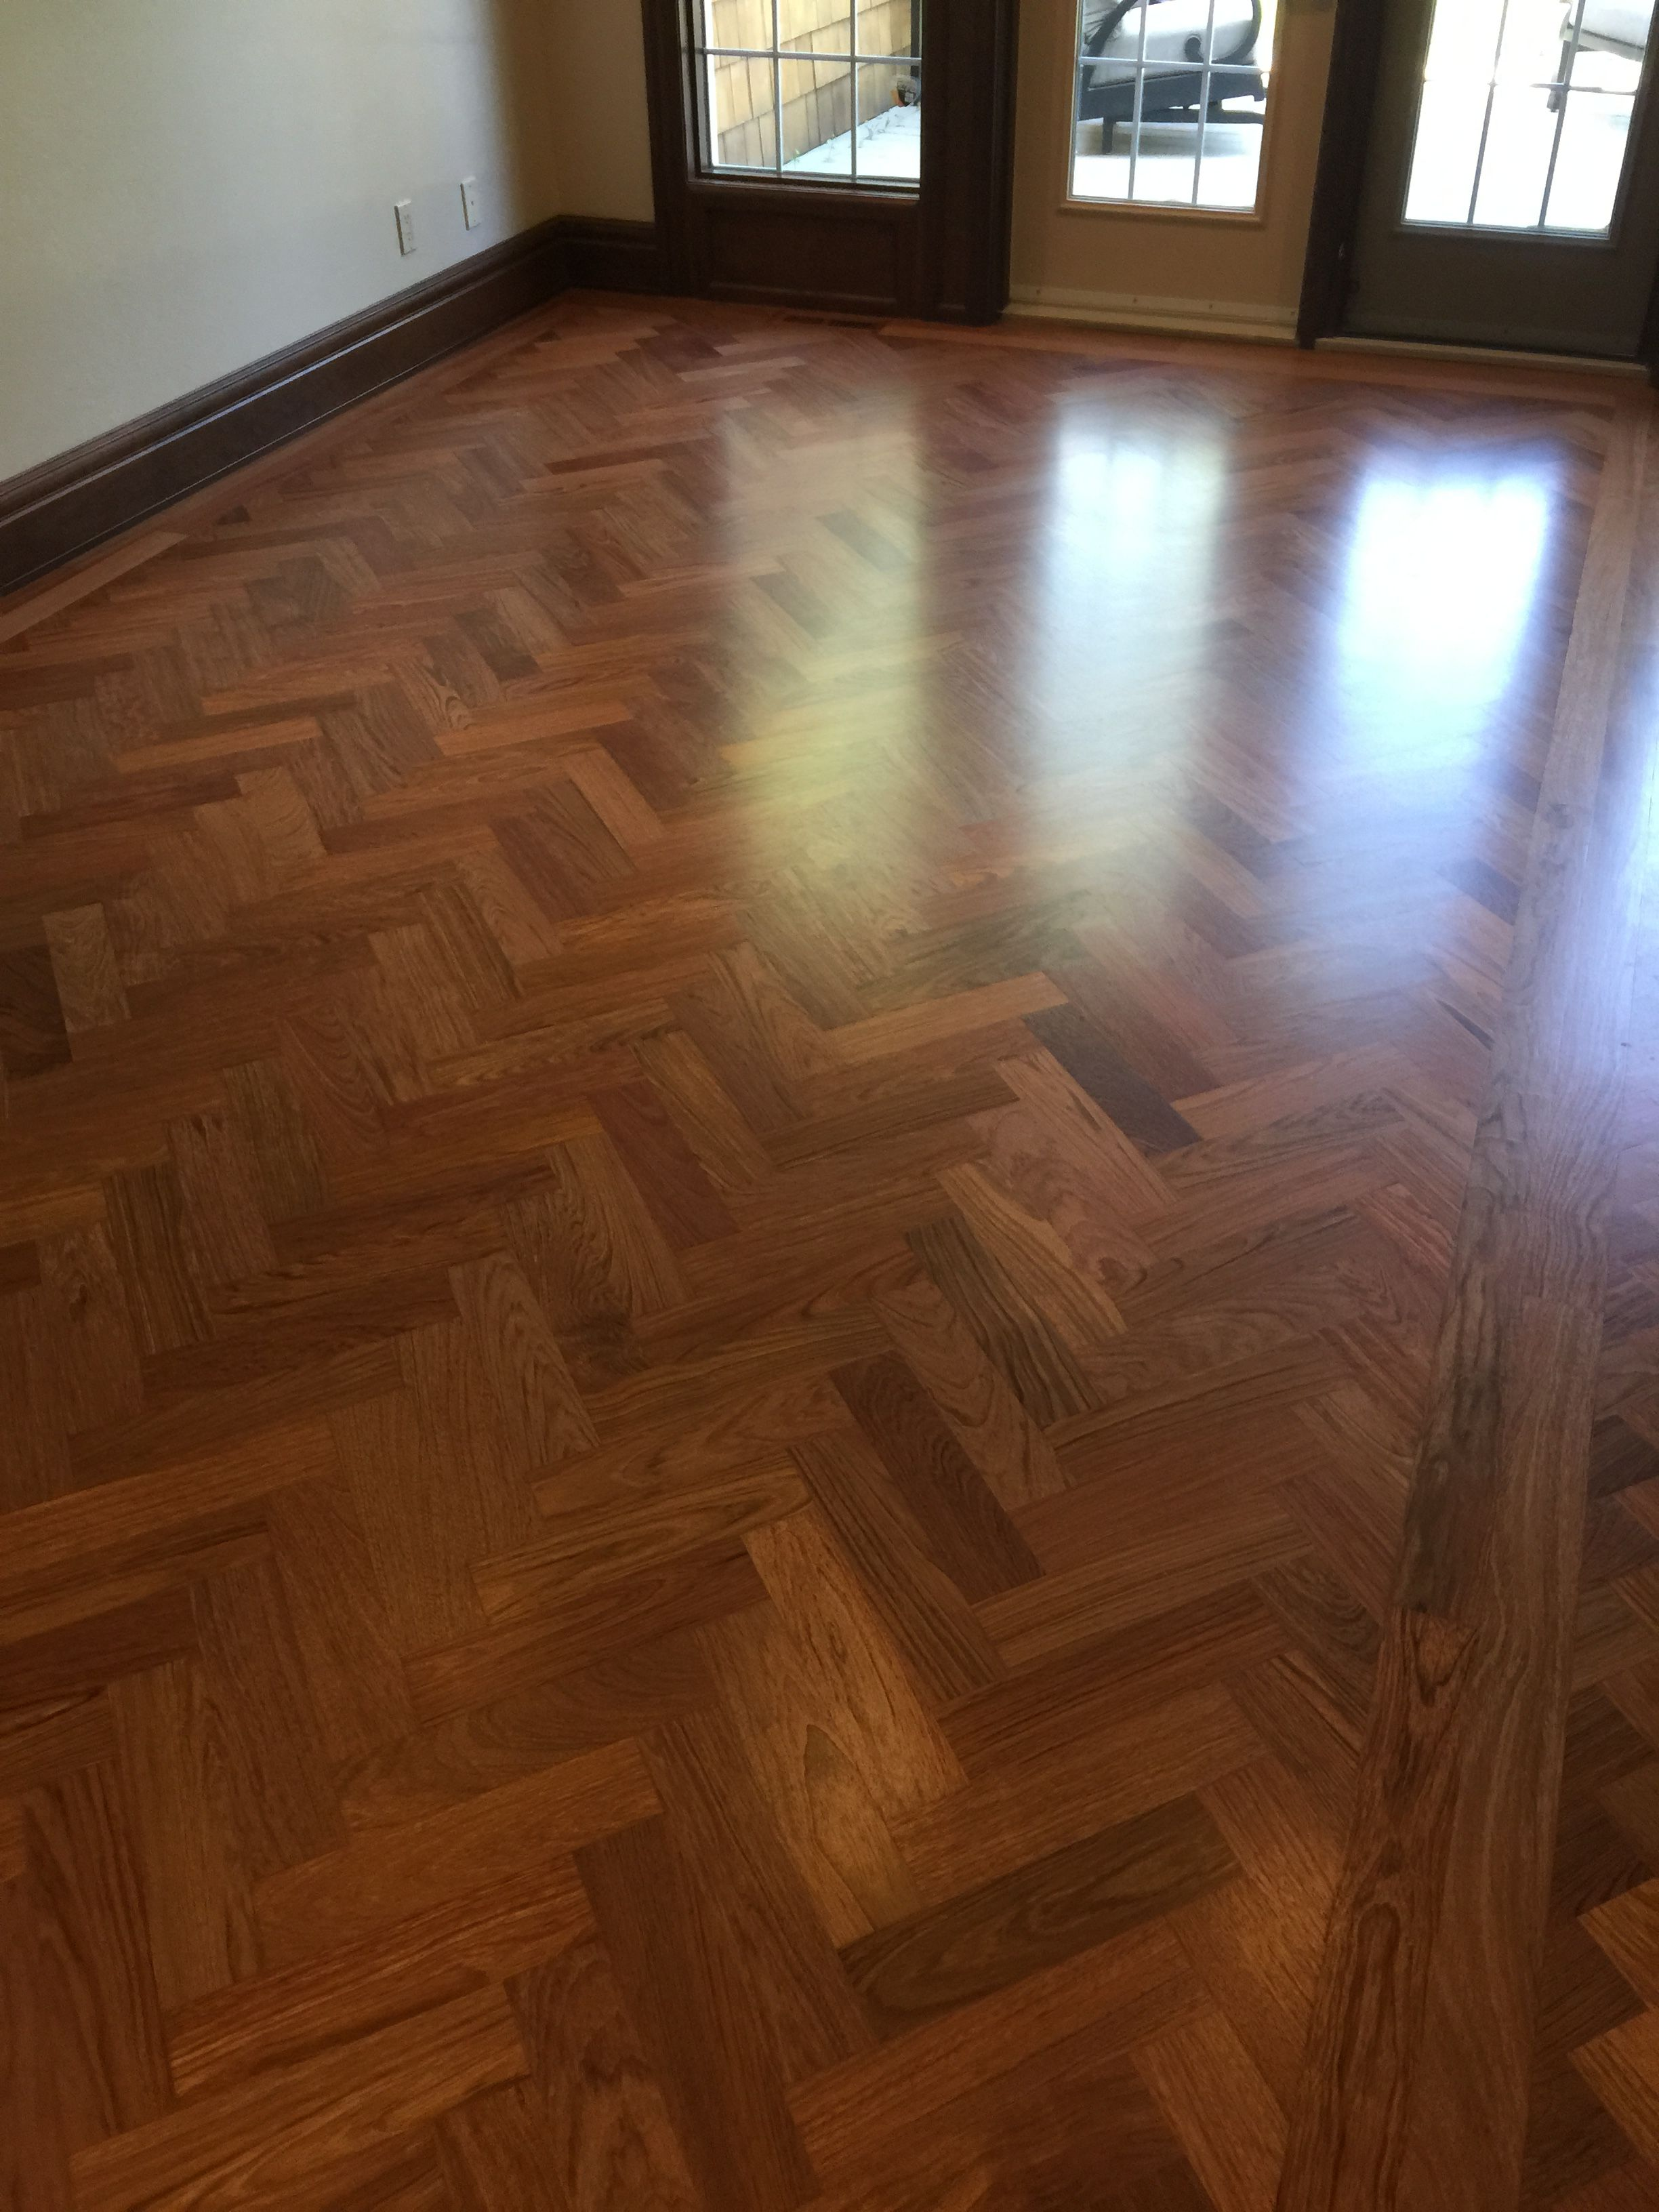 Brazilian Cherry Jatoba Custom Milled Sand And Finished On Site Natural Wood Floor Design Beautiful Bedrooms Master Floor Design